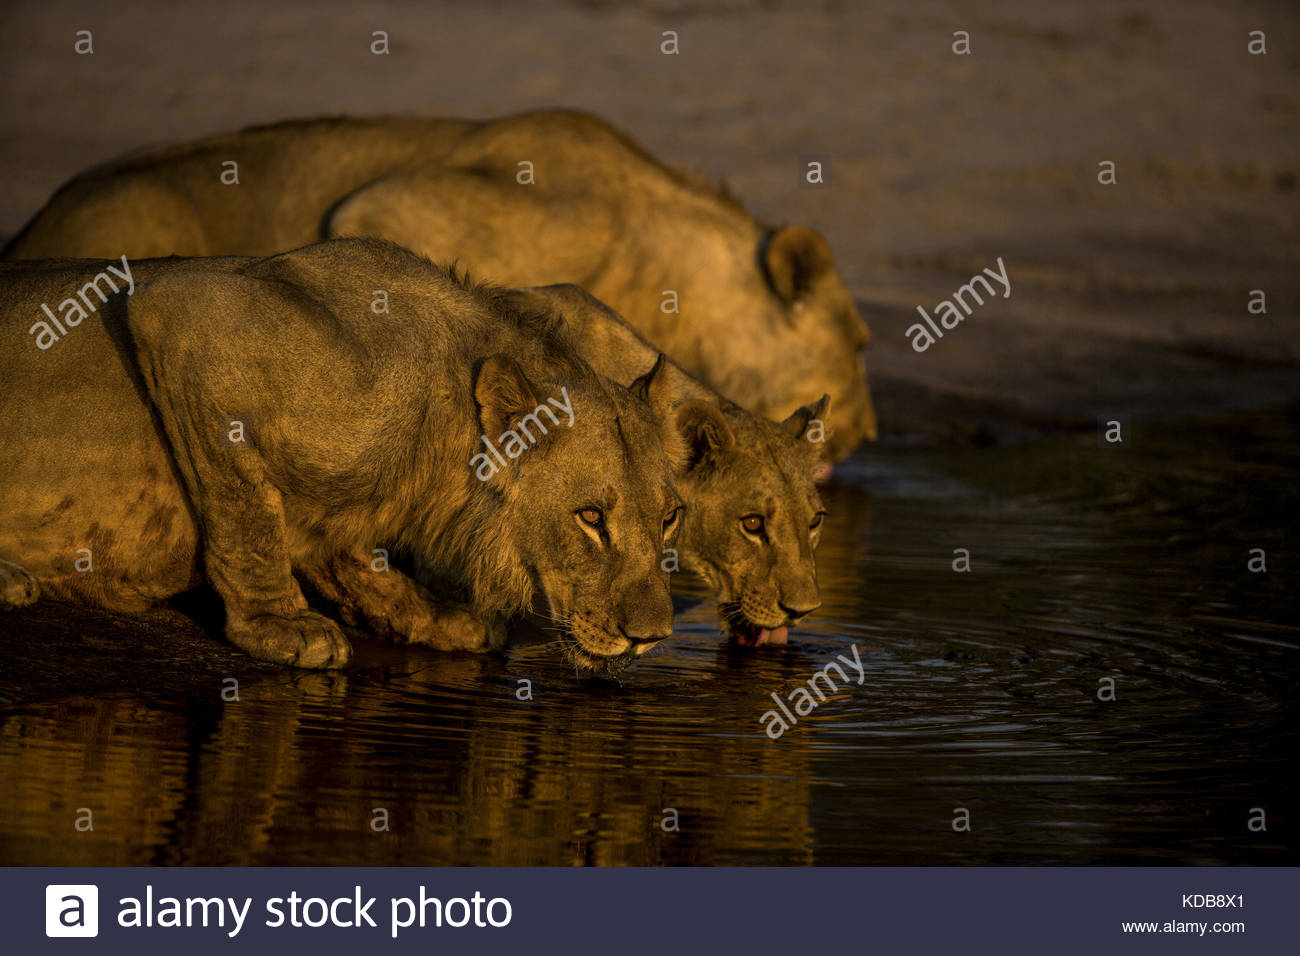 Lions, Panthera leo, drinking from a spillway at sunset. - Stock Image